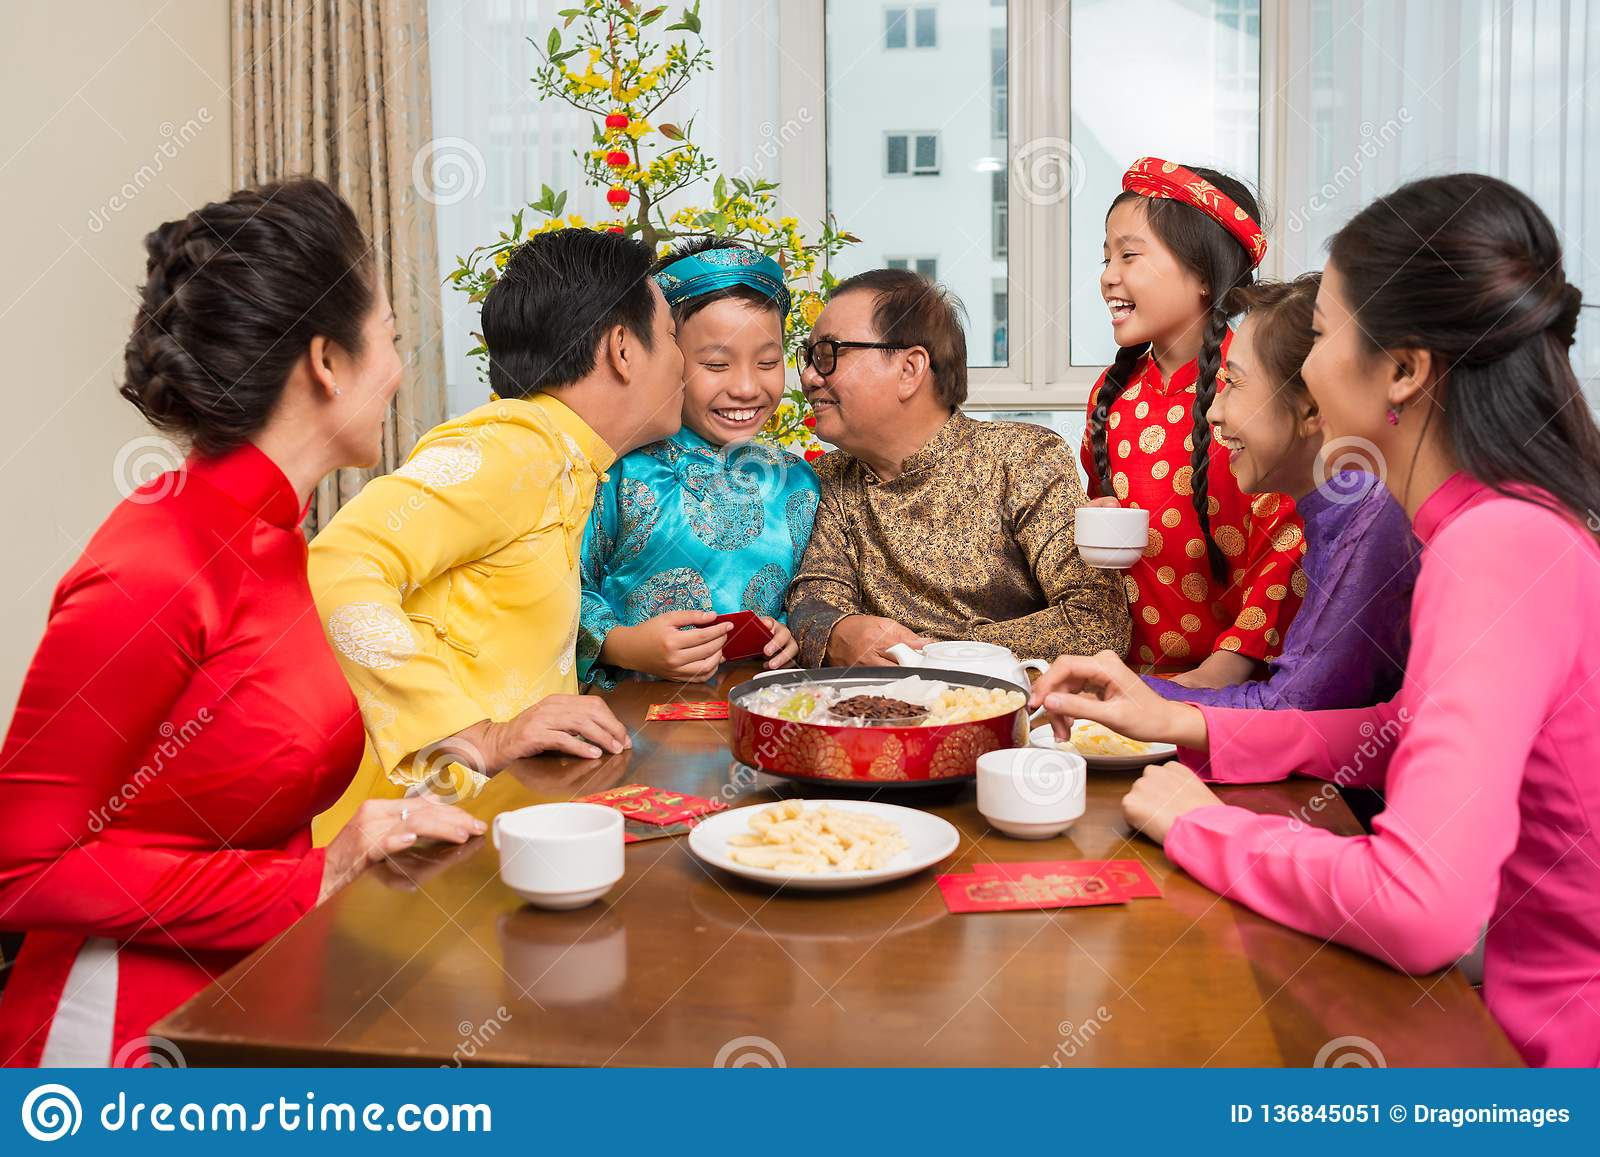 Image result for Vietnamese family